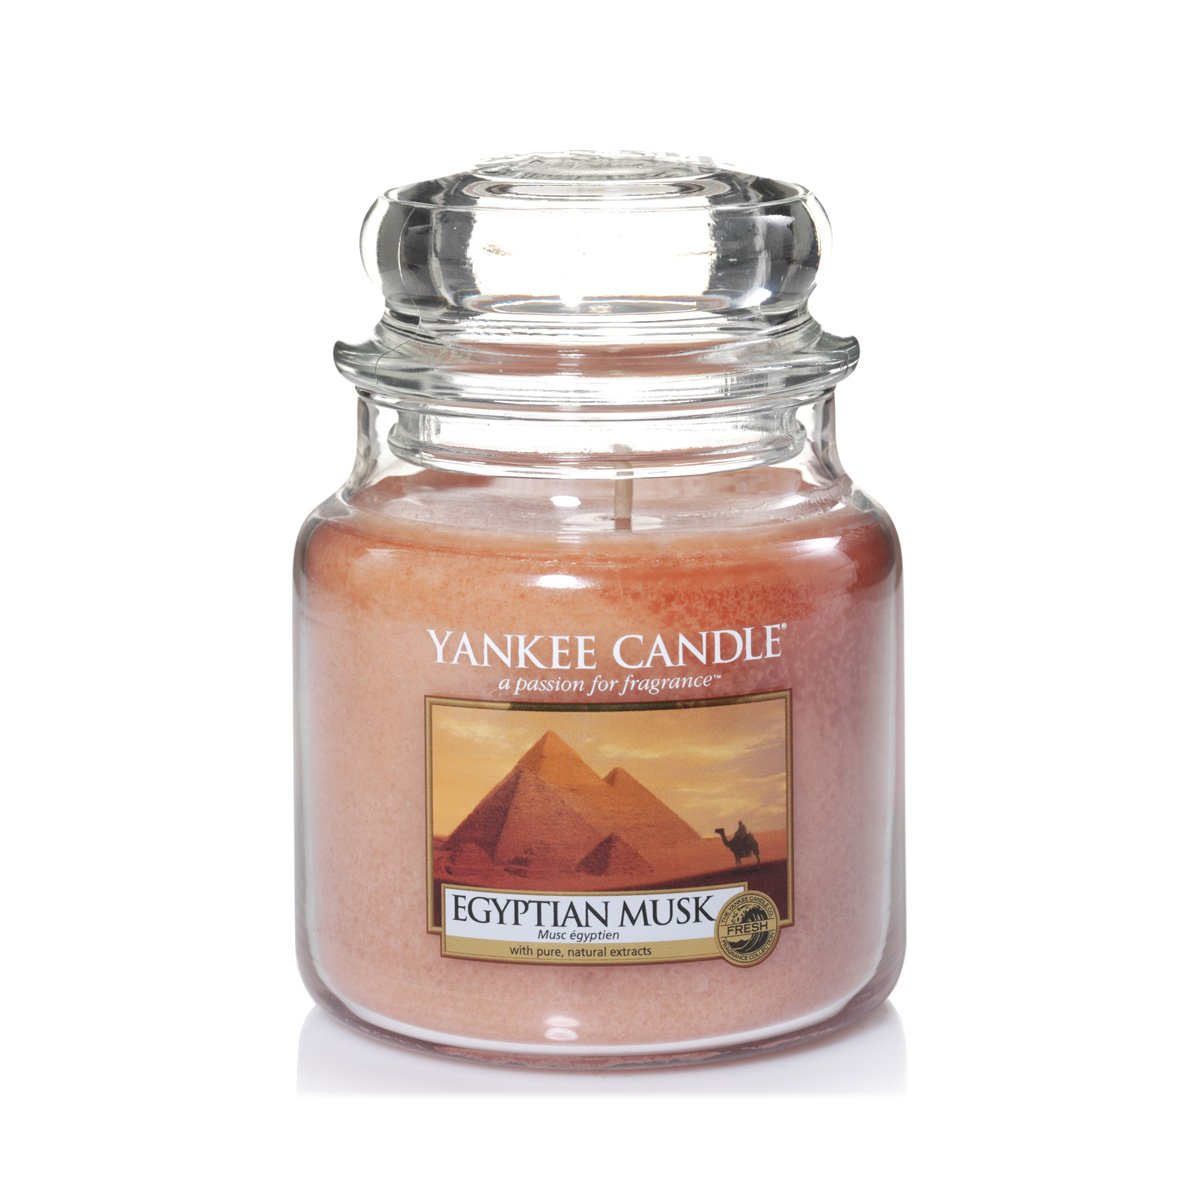 Yankee Candle Sparkling Cinnamon Large 2 Festive Scent, Red, L 2-Wick Tumbler Candle Yankee Candle Company 1125621